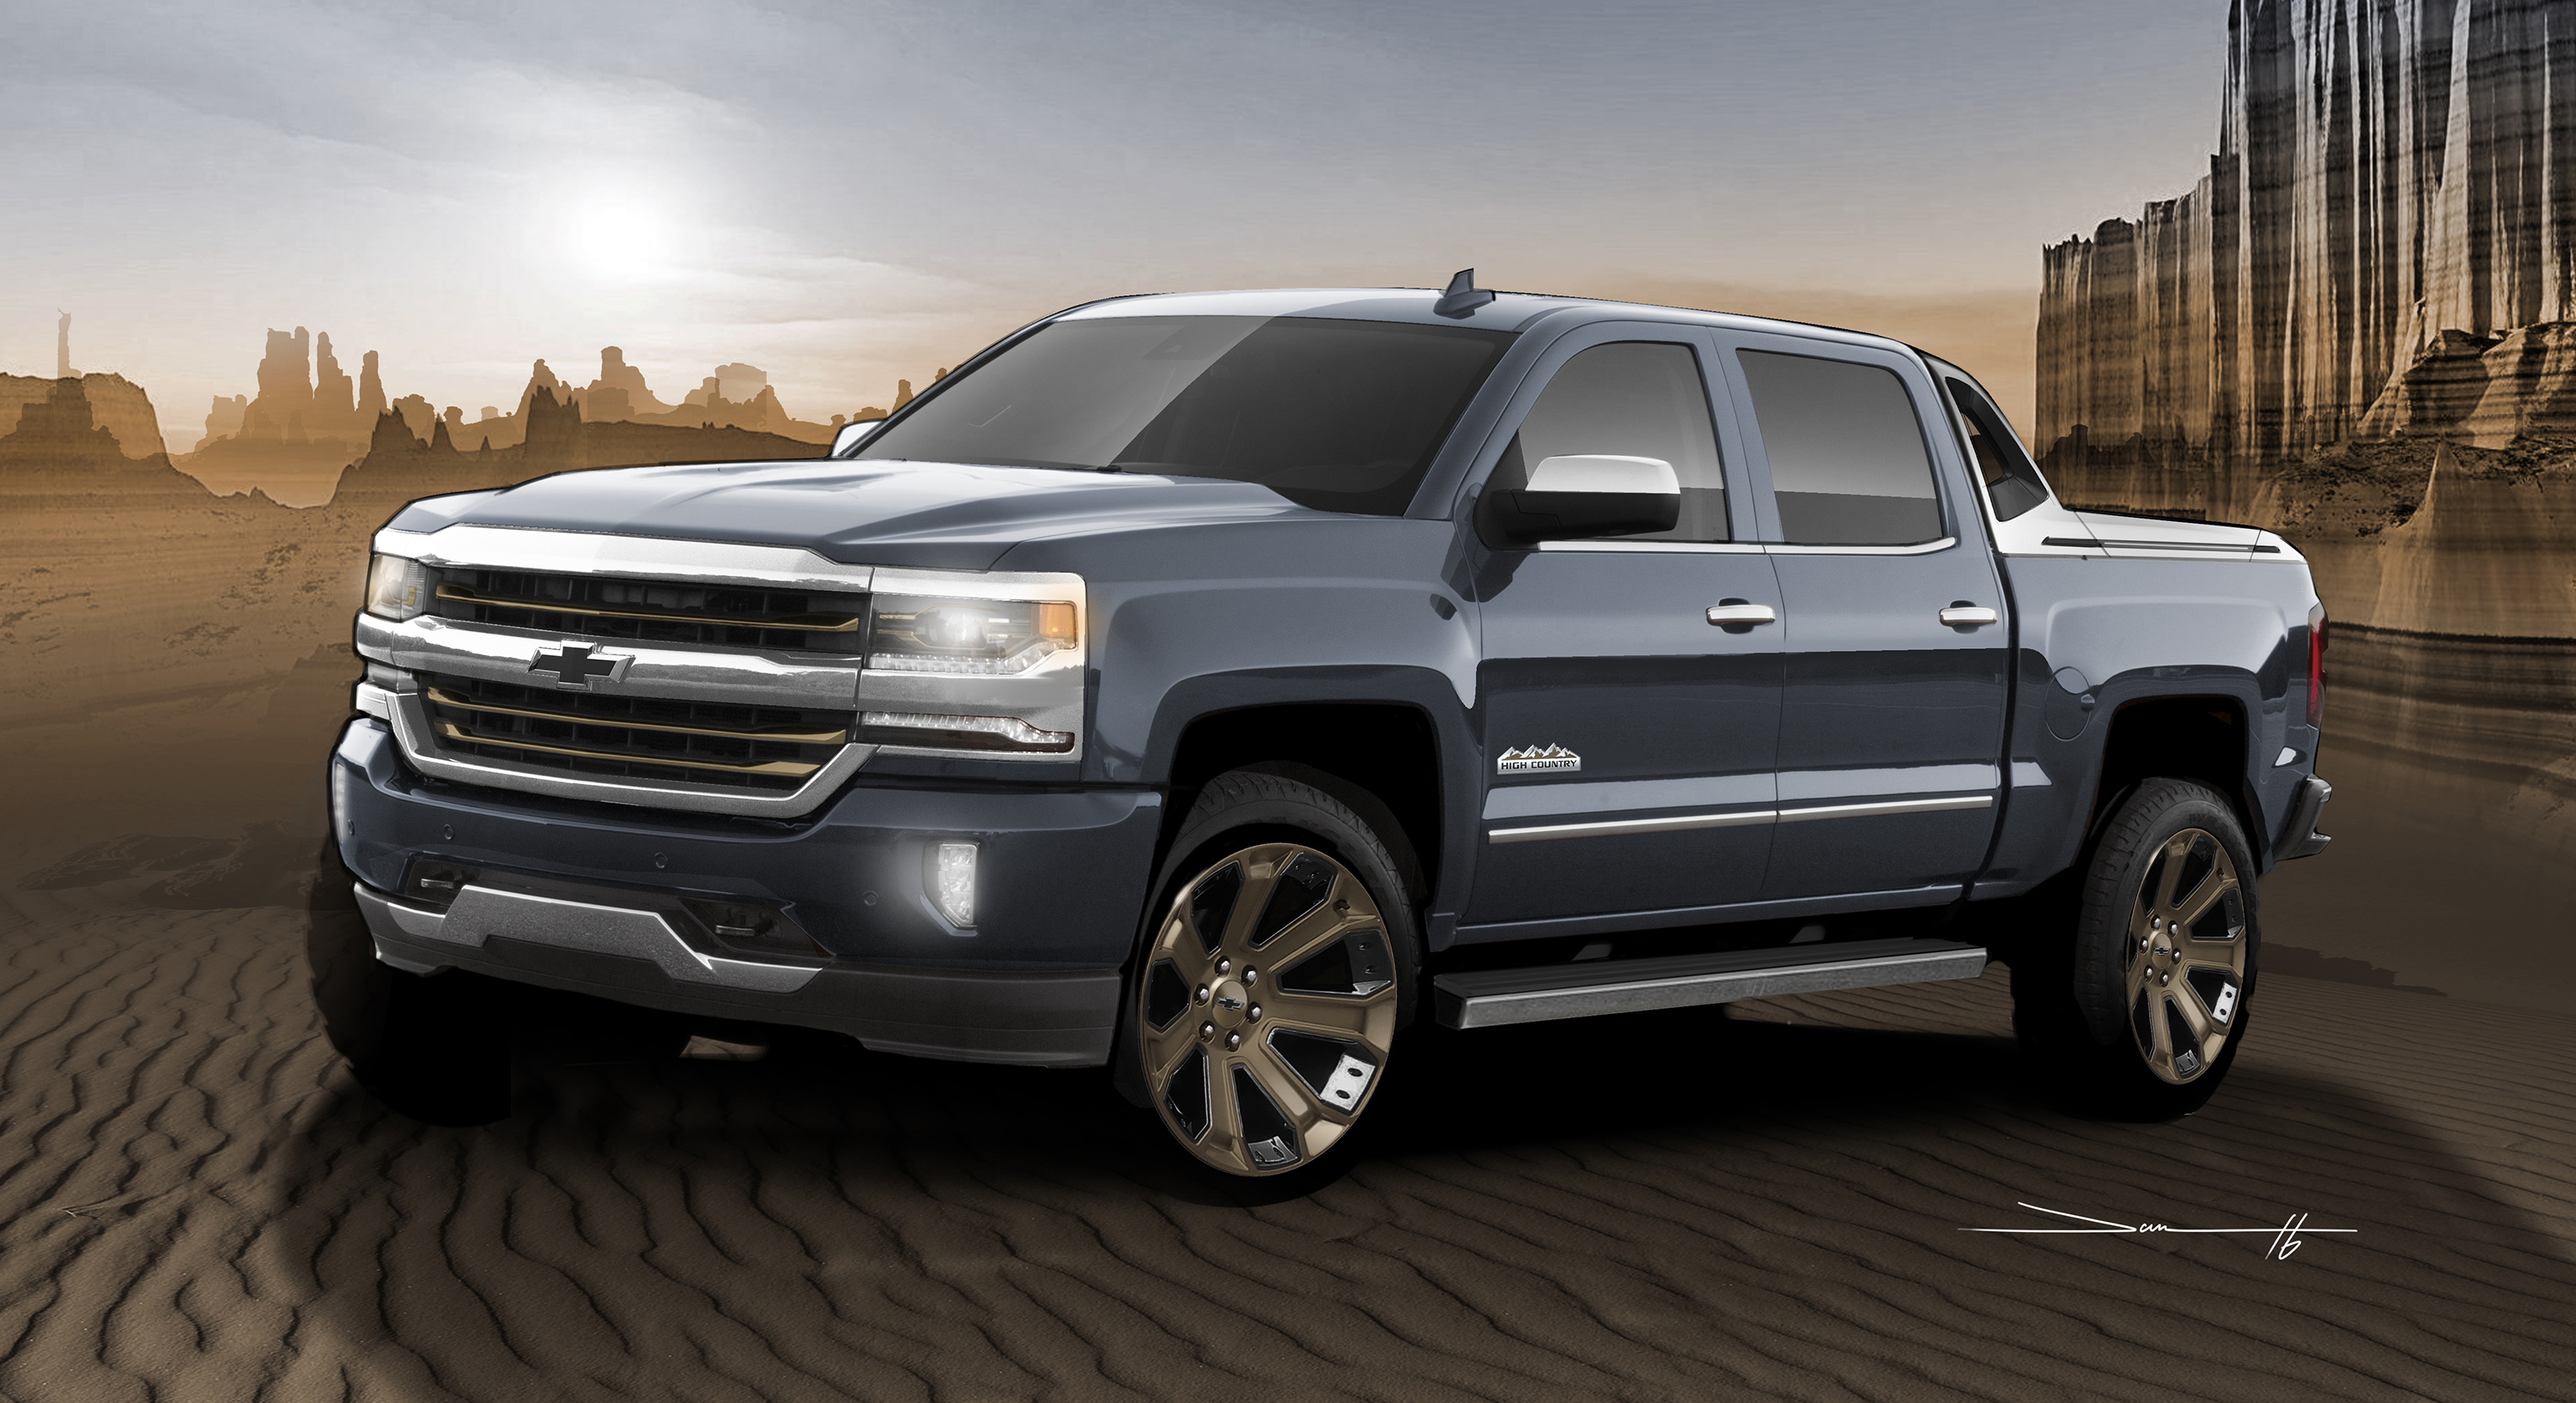 Silverado 1500 High Desert Offers